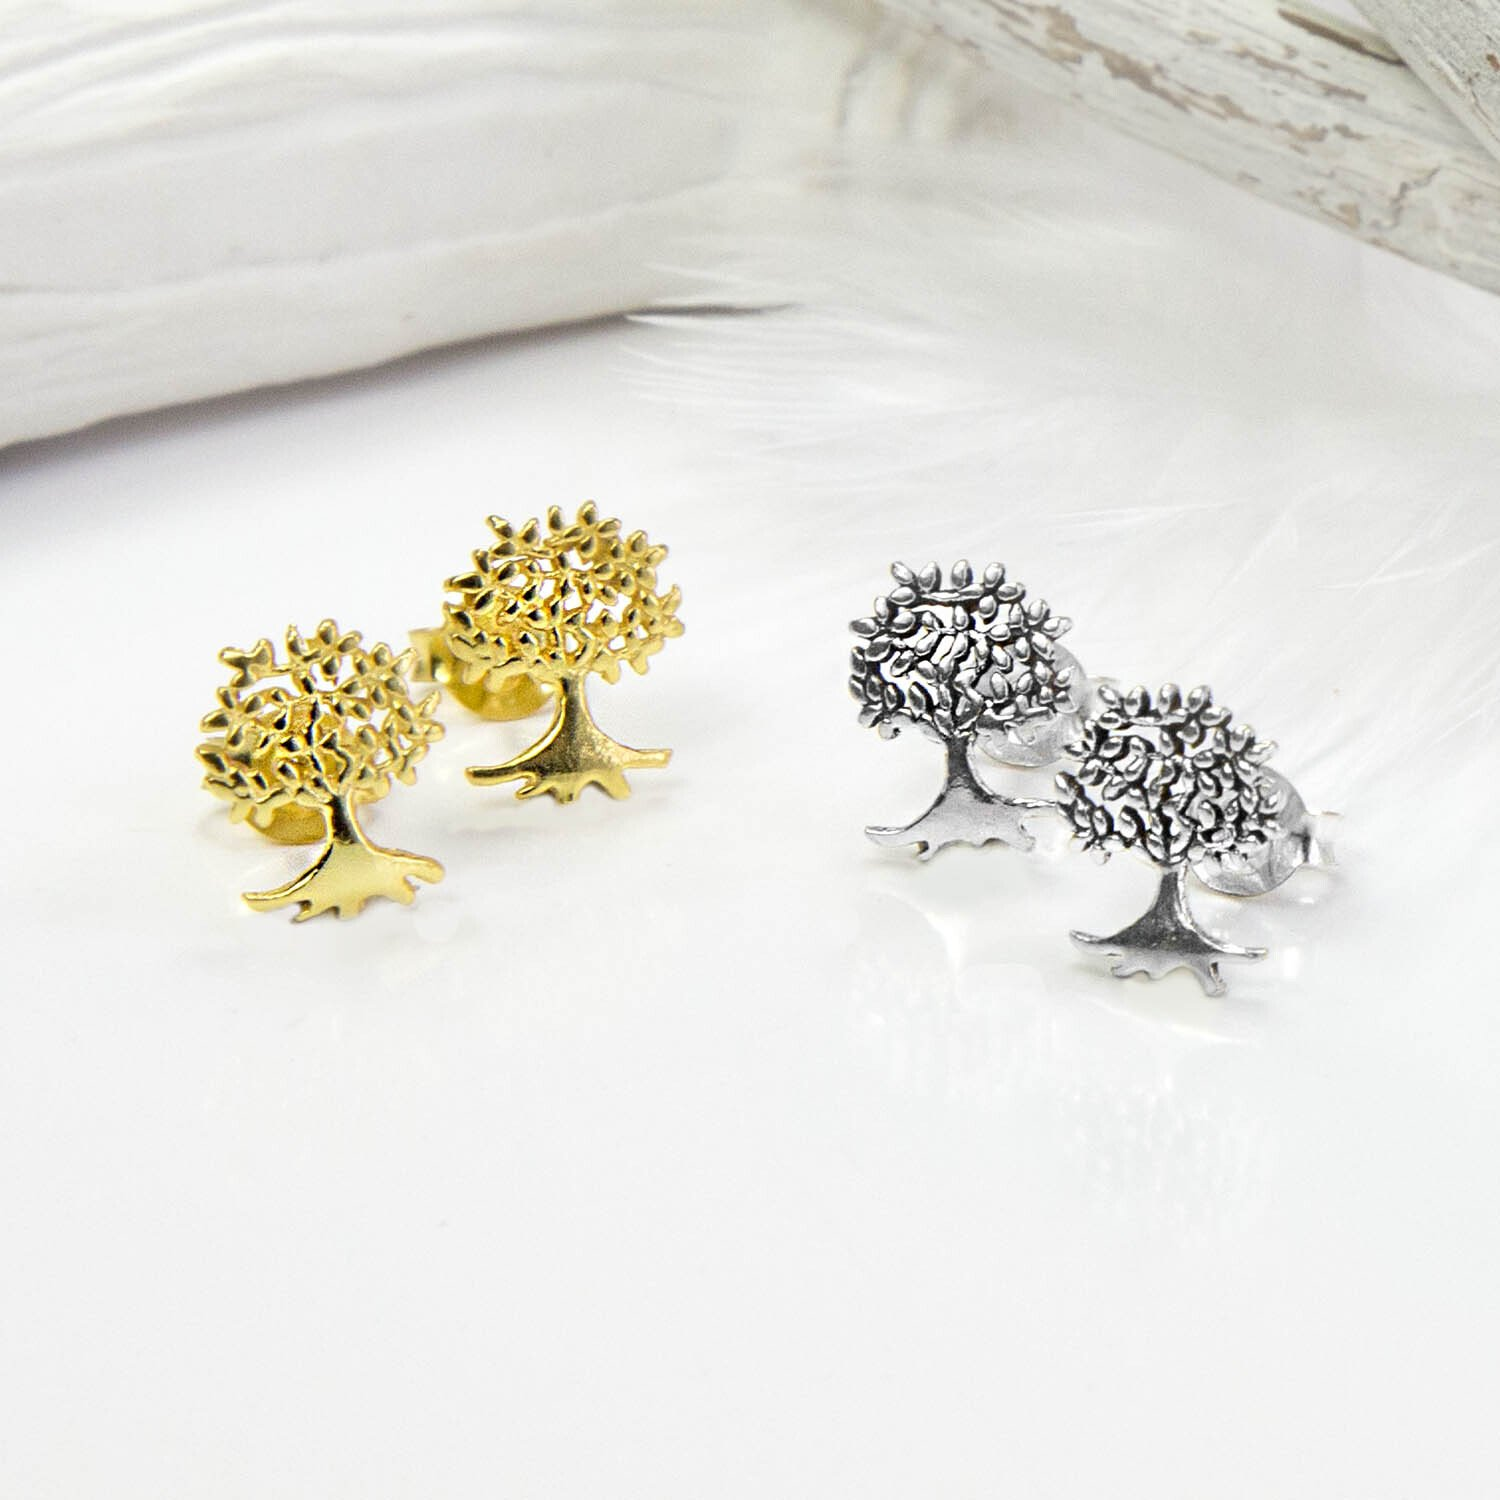 Small Gold Tree studs on the left and Silver Tree studs on the right, with white feathers and background